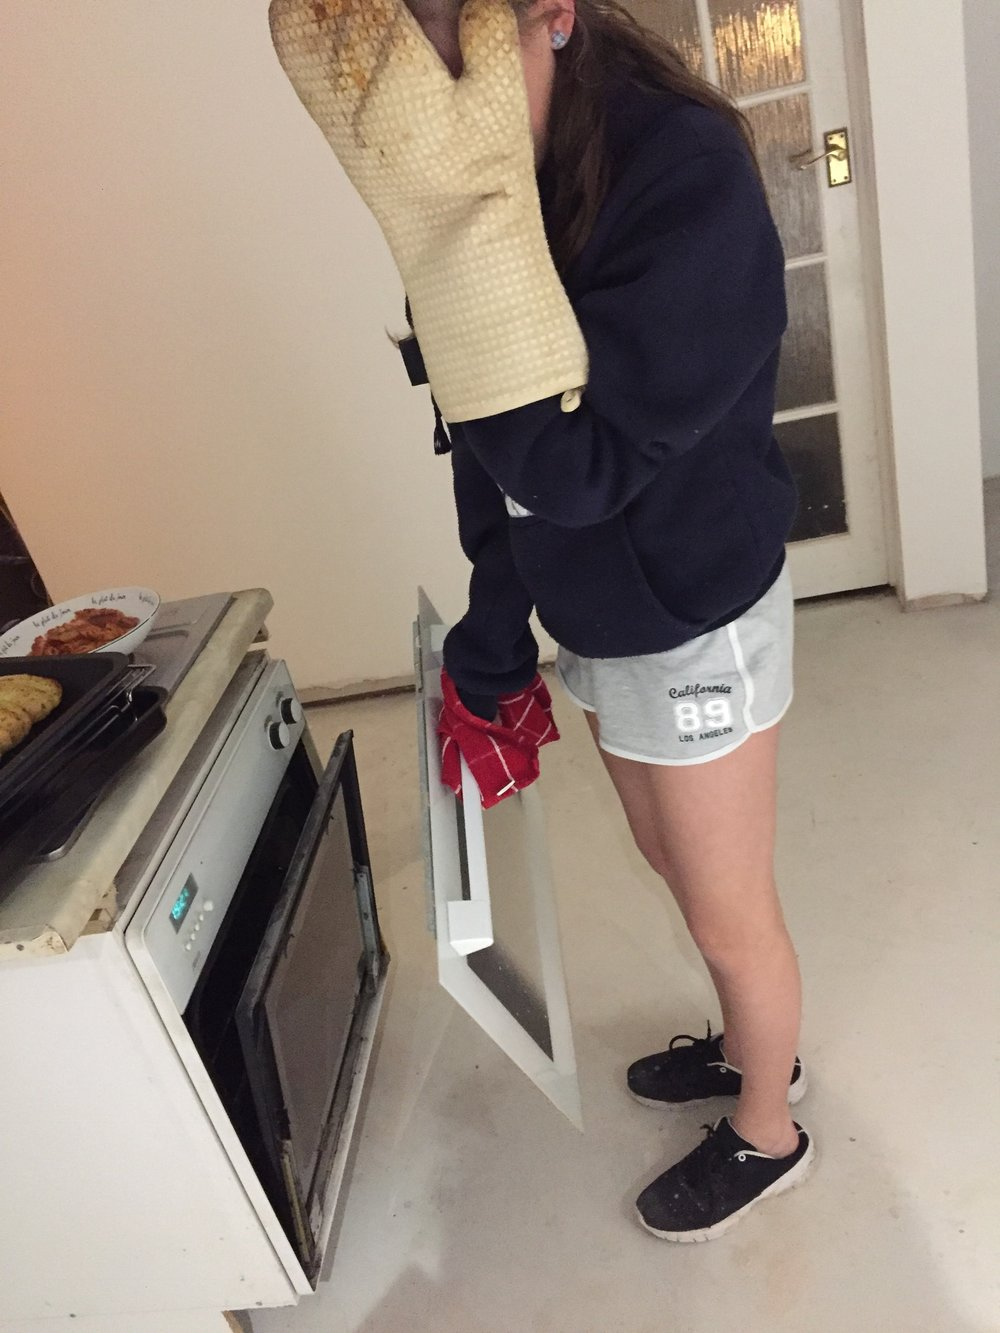 Girl with face covered and oven door in her hand because it had fallen off